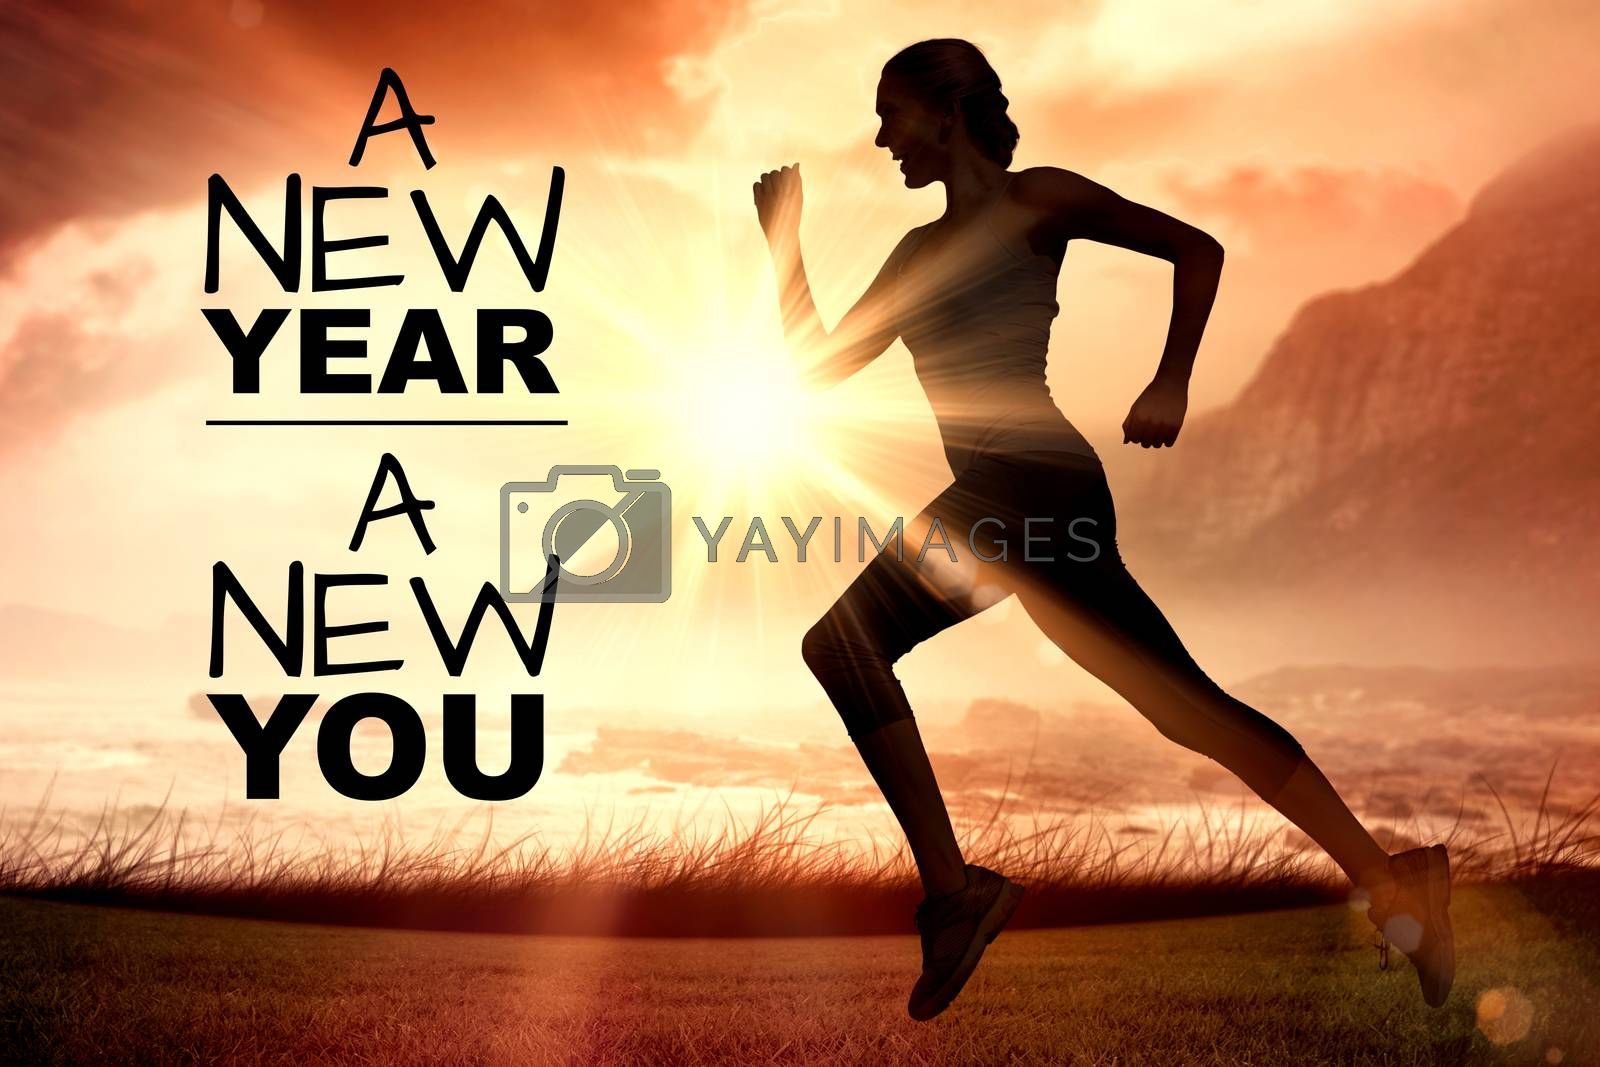 New year new you against side view of silhouette woman running